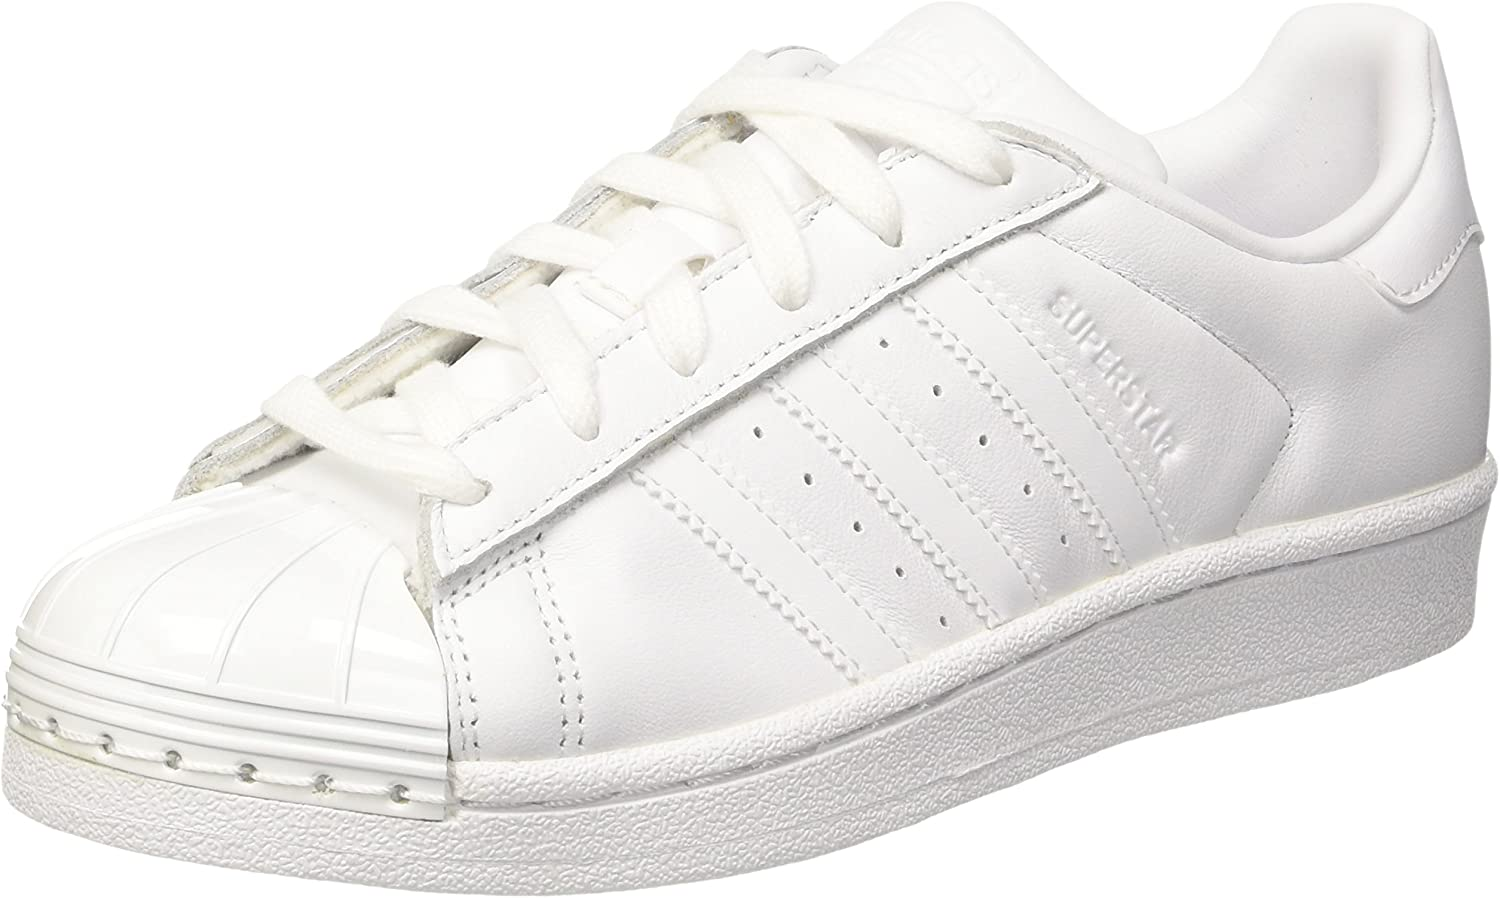 Adidas Originals Womens Superstar Metal Toe Trainers-White